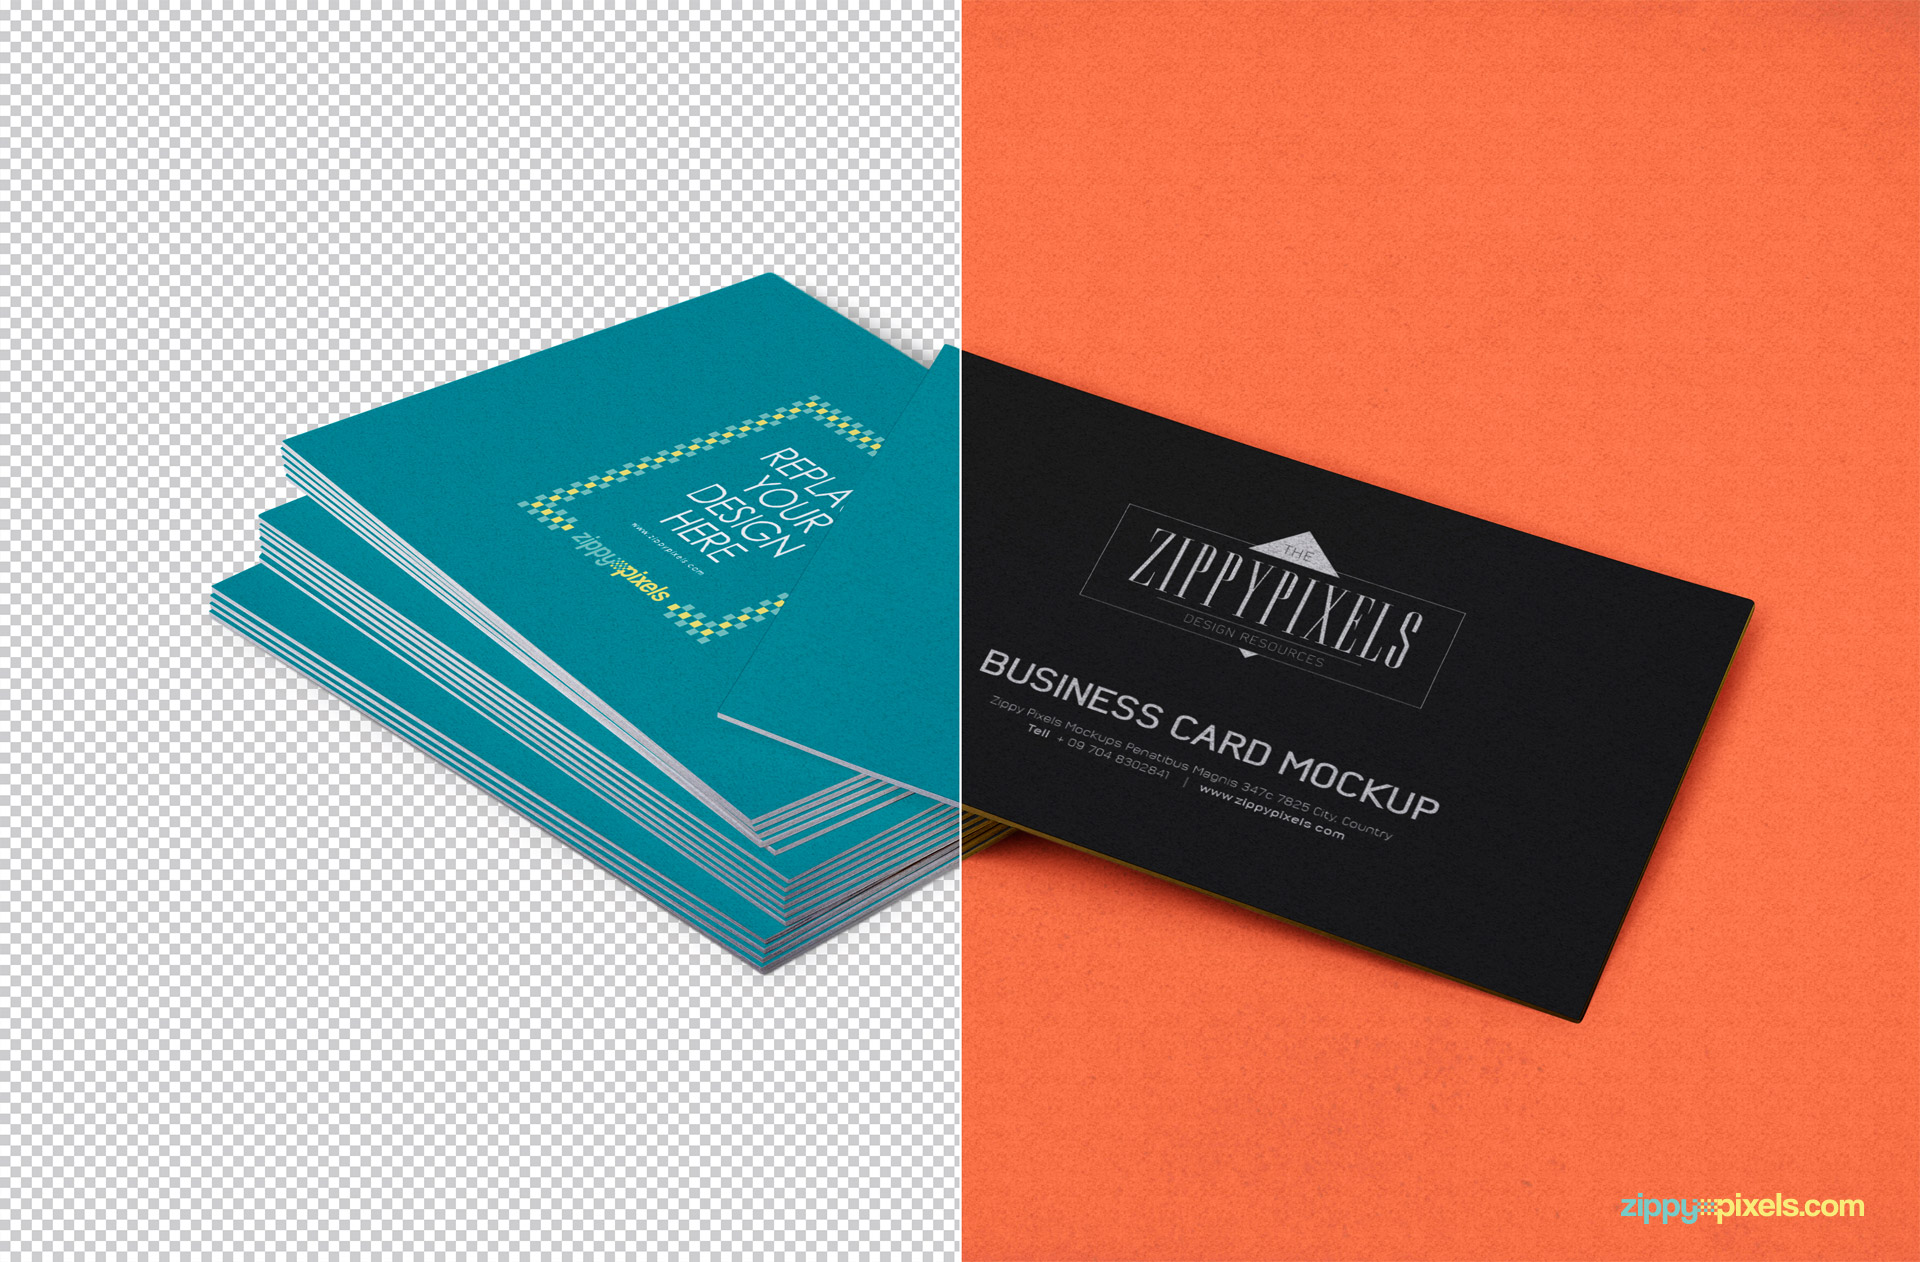 04-free-editable-business-card-mockup-PSD-824x542